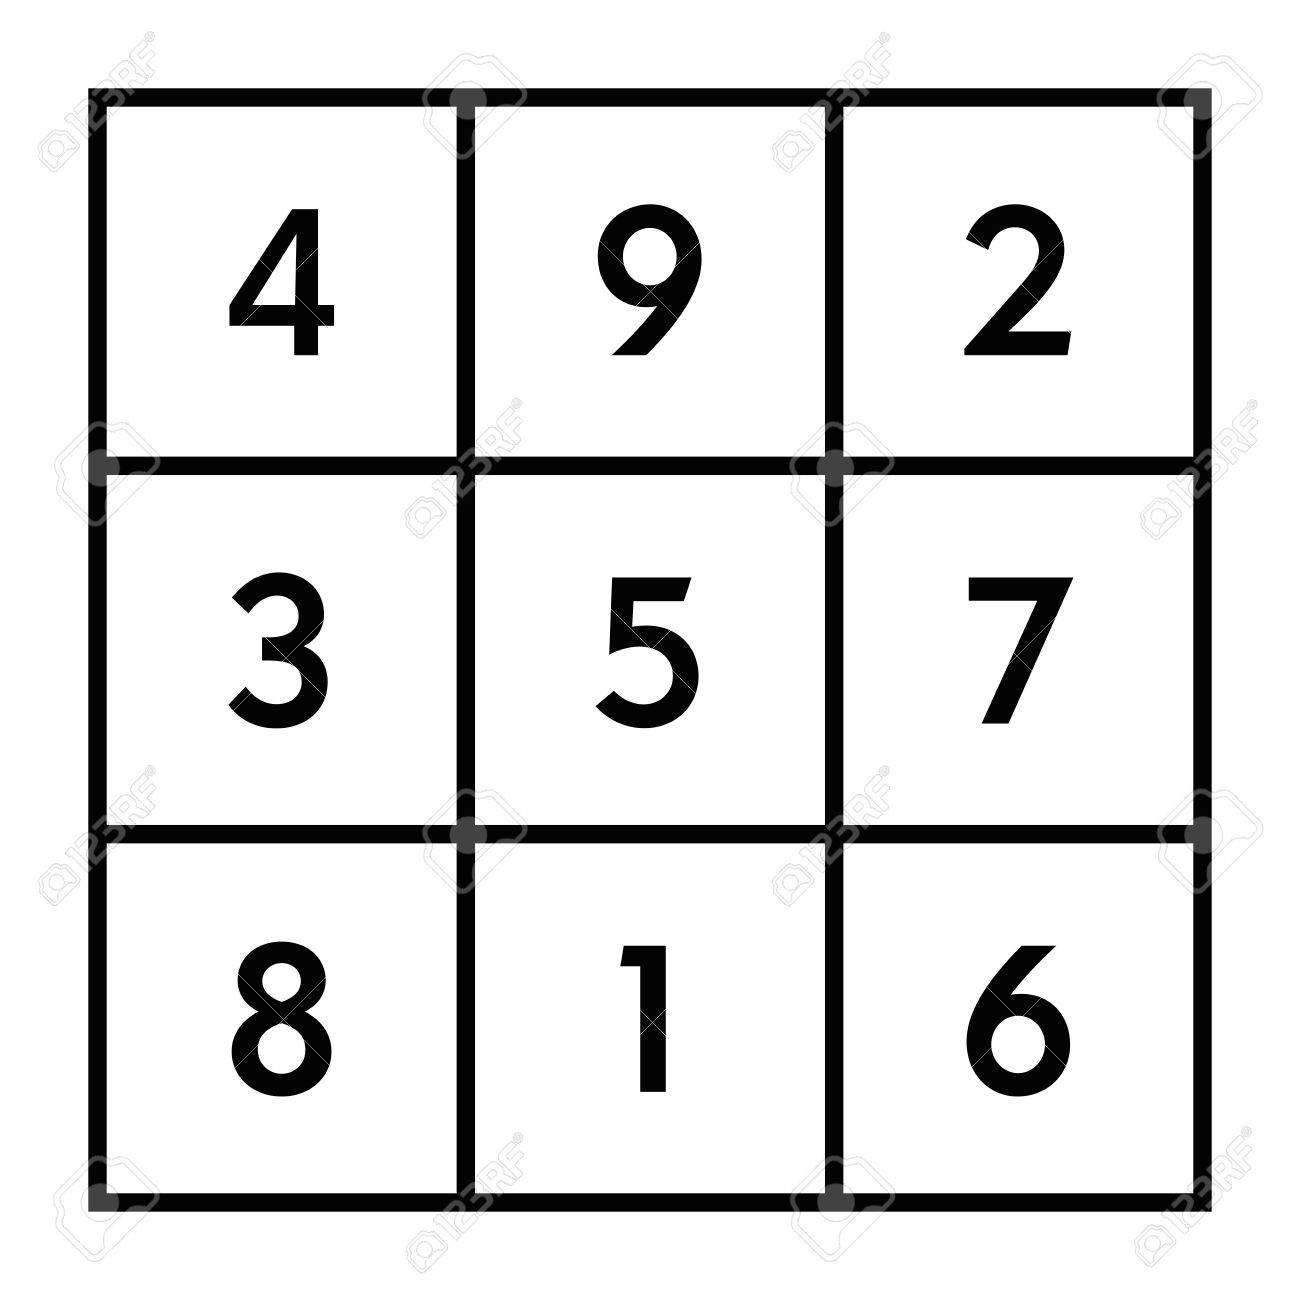 3x3 magic square of order 3 assigned to astrological planet Saturn